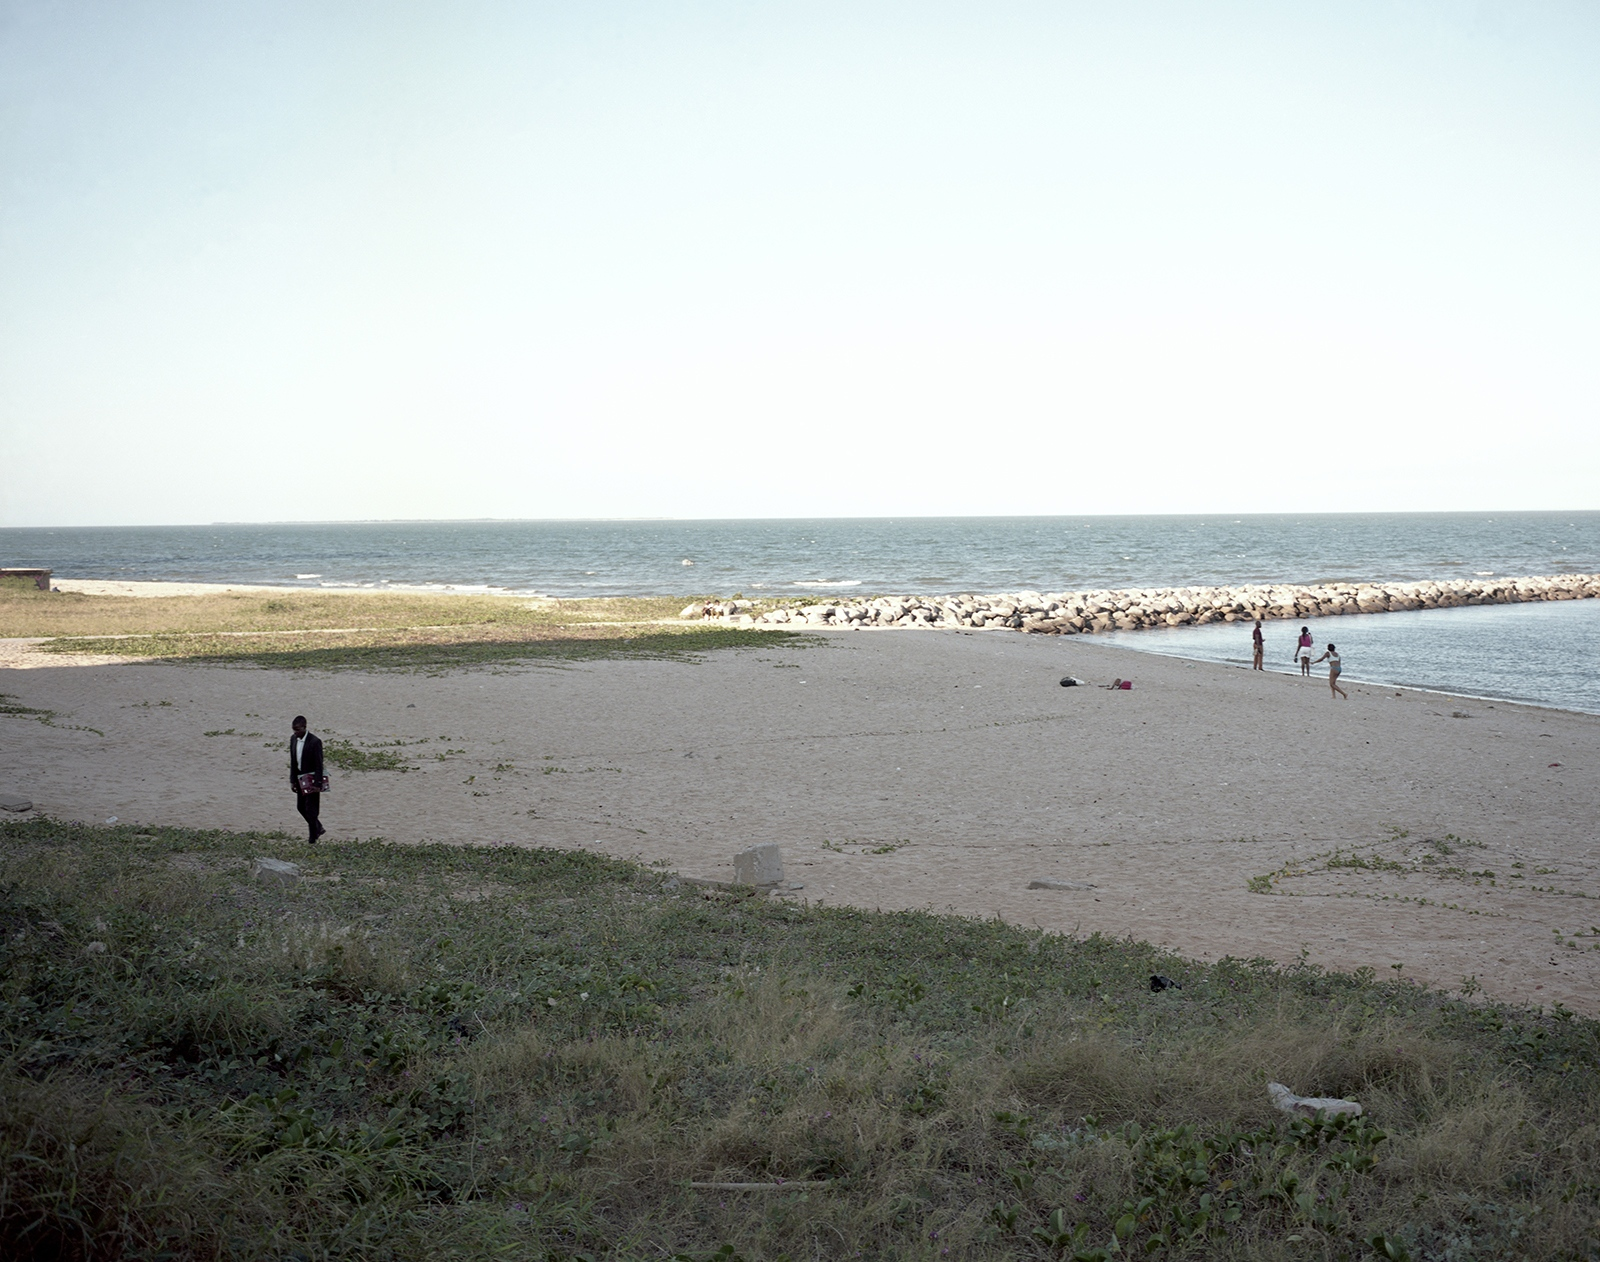 Daily-life on the beach close to the seaside road of Maputo. The project cost was US$ 315 millions and it has still to be paid by the State, also the high speed road and the absence of bridges to cross the road increase the number of car accidents involving pedestrians.